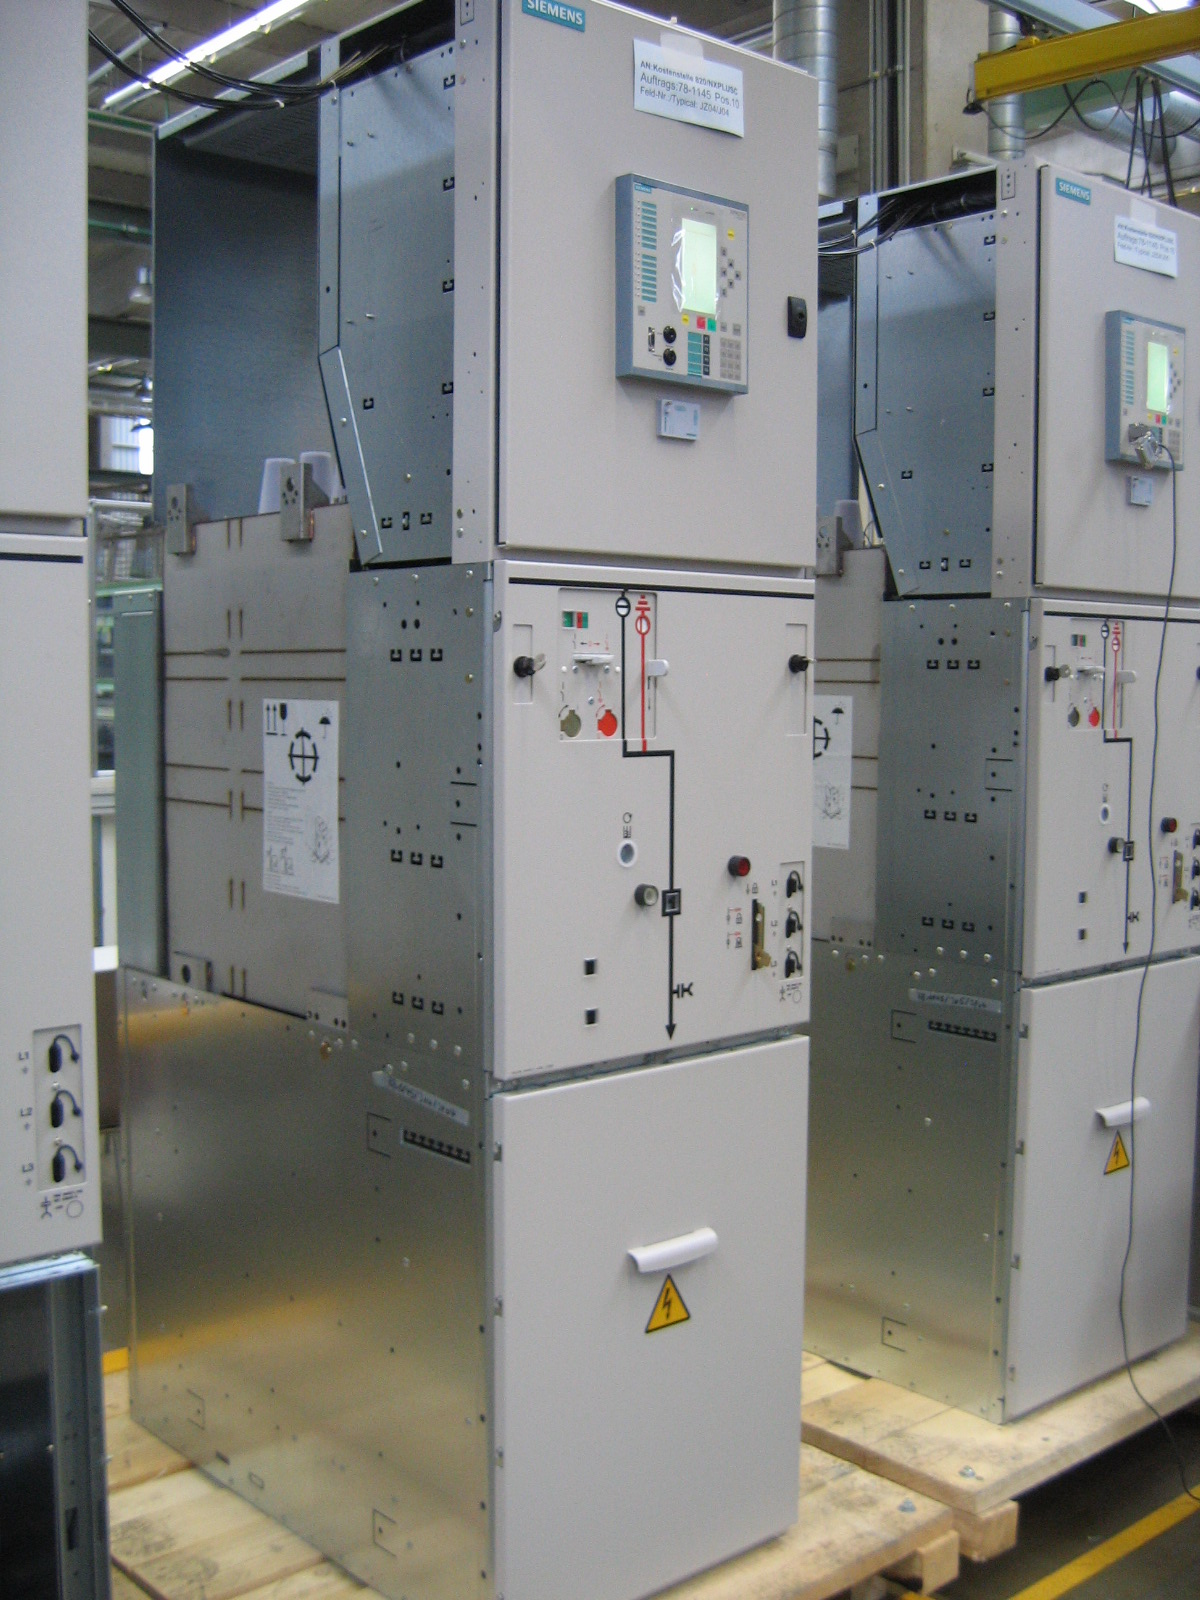 File:Medium voltage panel.jpg - Wikimedia Commons